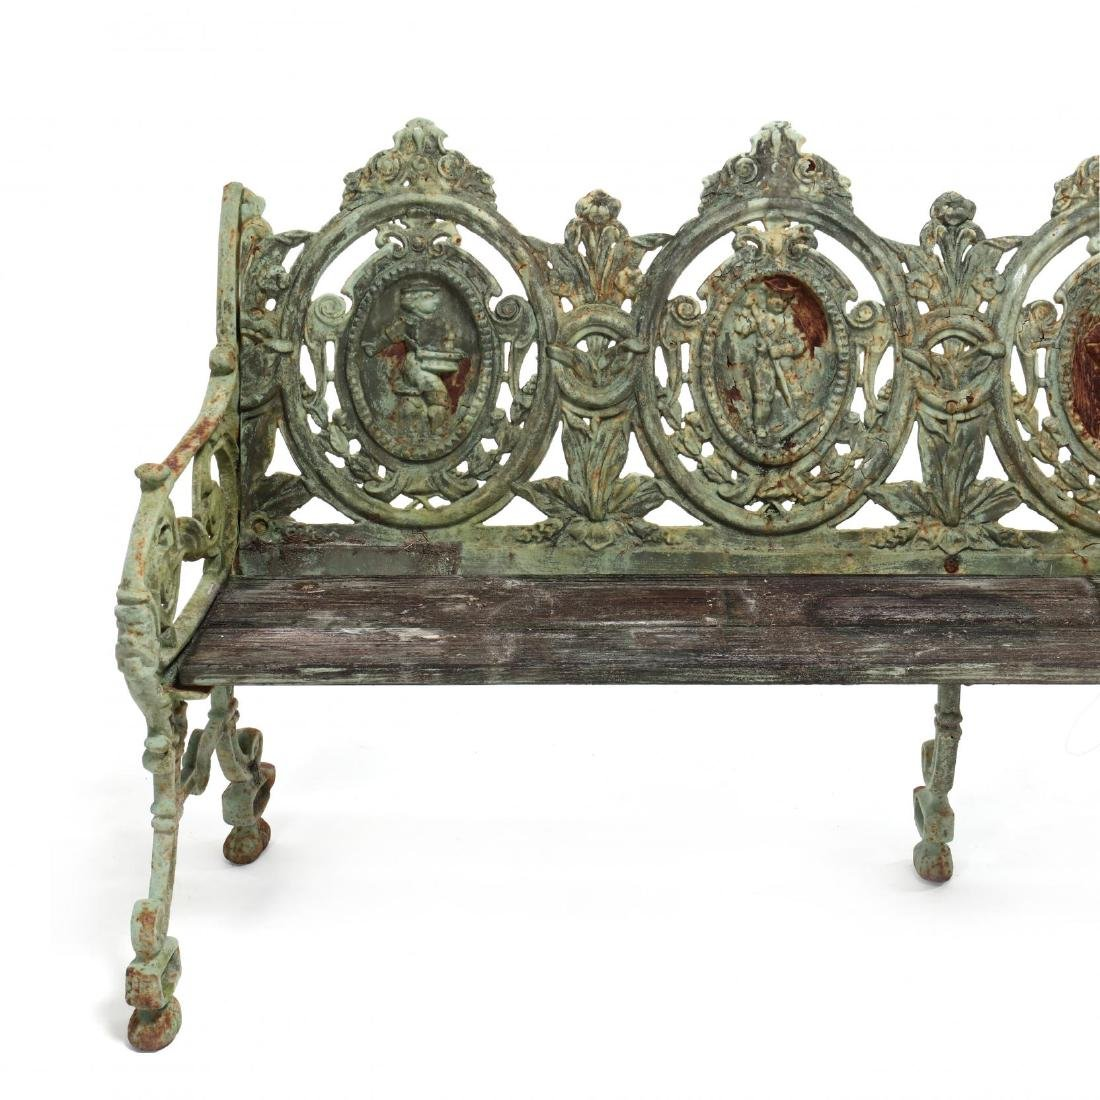 Pair of Renaissance Revival Cast Iron Garden Benches - 5